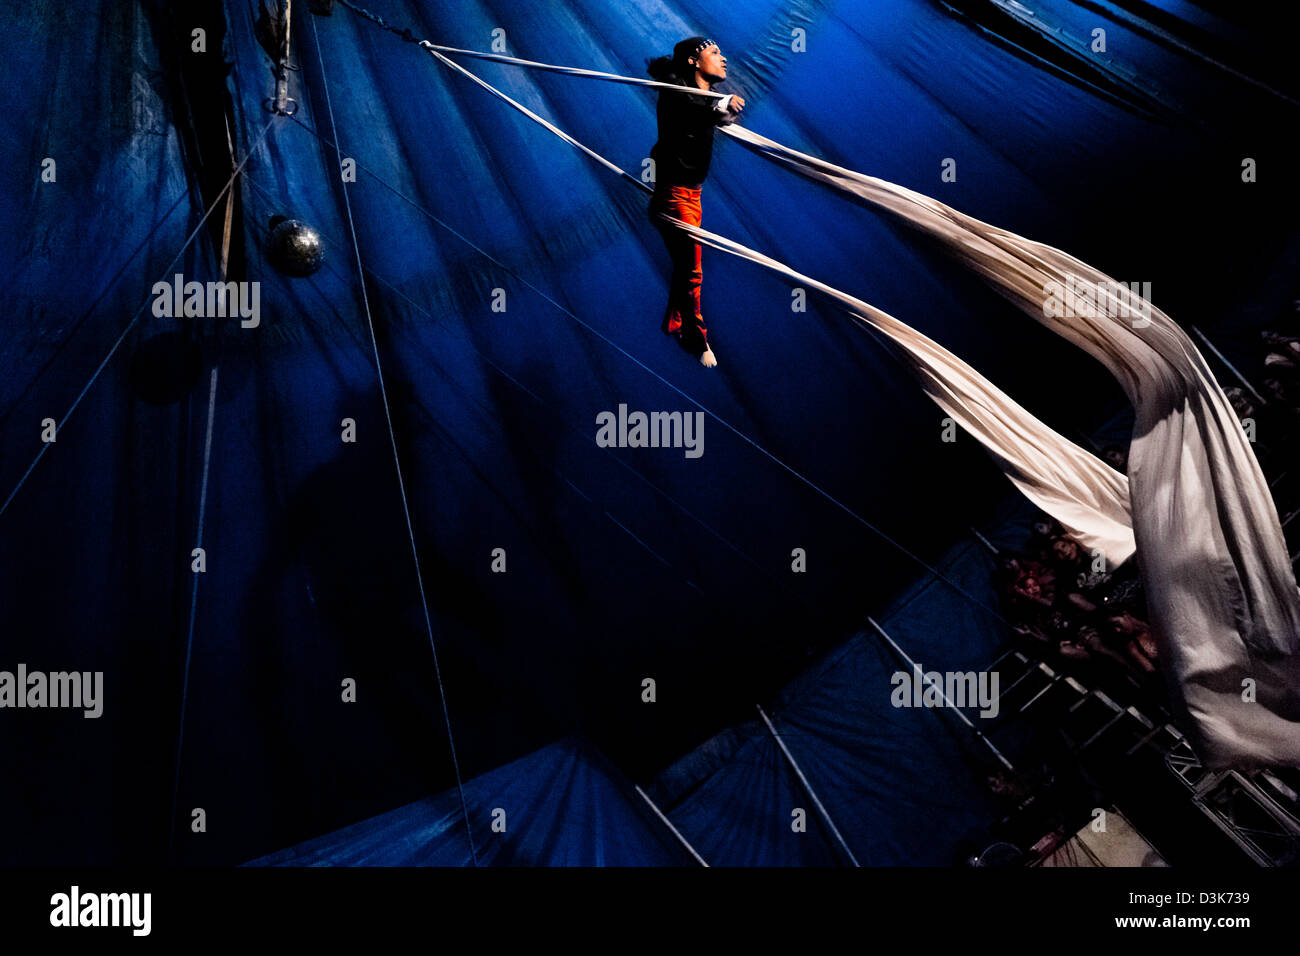 A Salvadorean man performs an aerial fabric acrobatics act at a family run circus travelling in Central America. - Stock Image